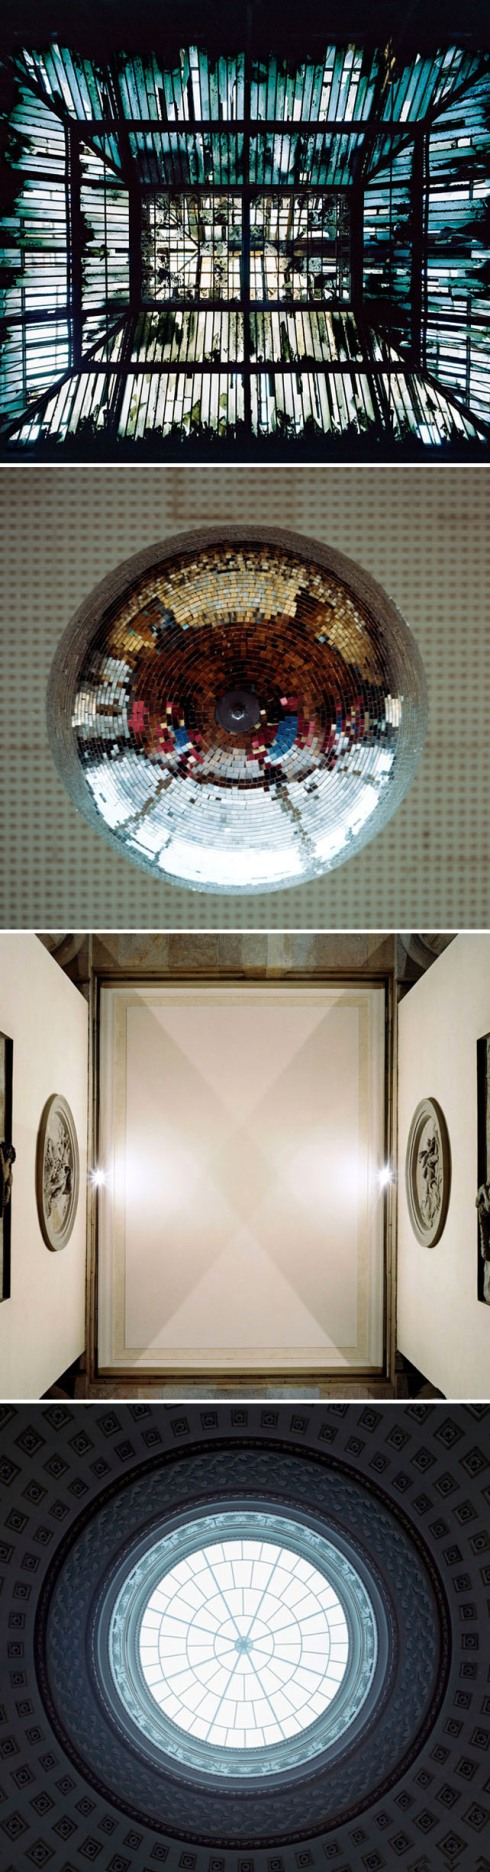 ceiling light, projected photo, illuminated photo of church dome, skylight, disco ball